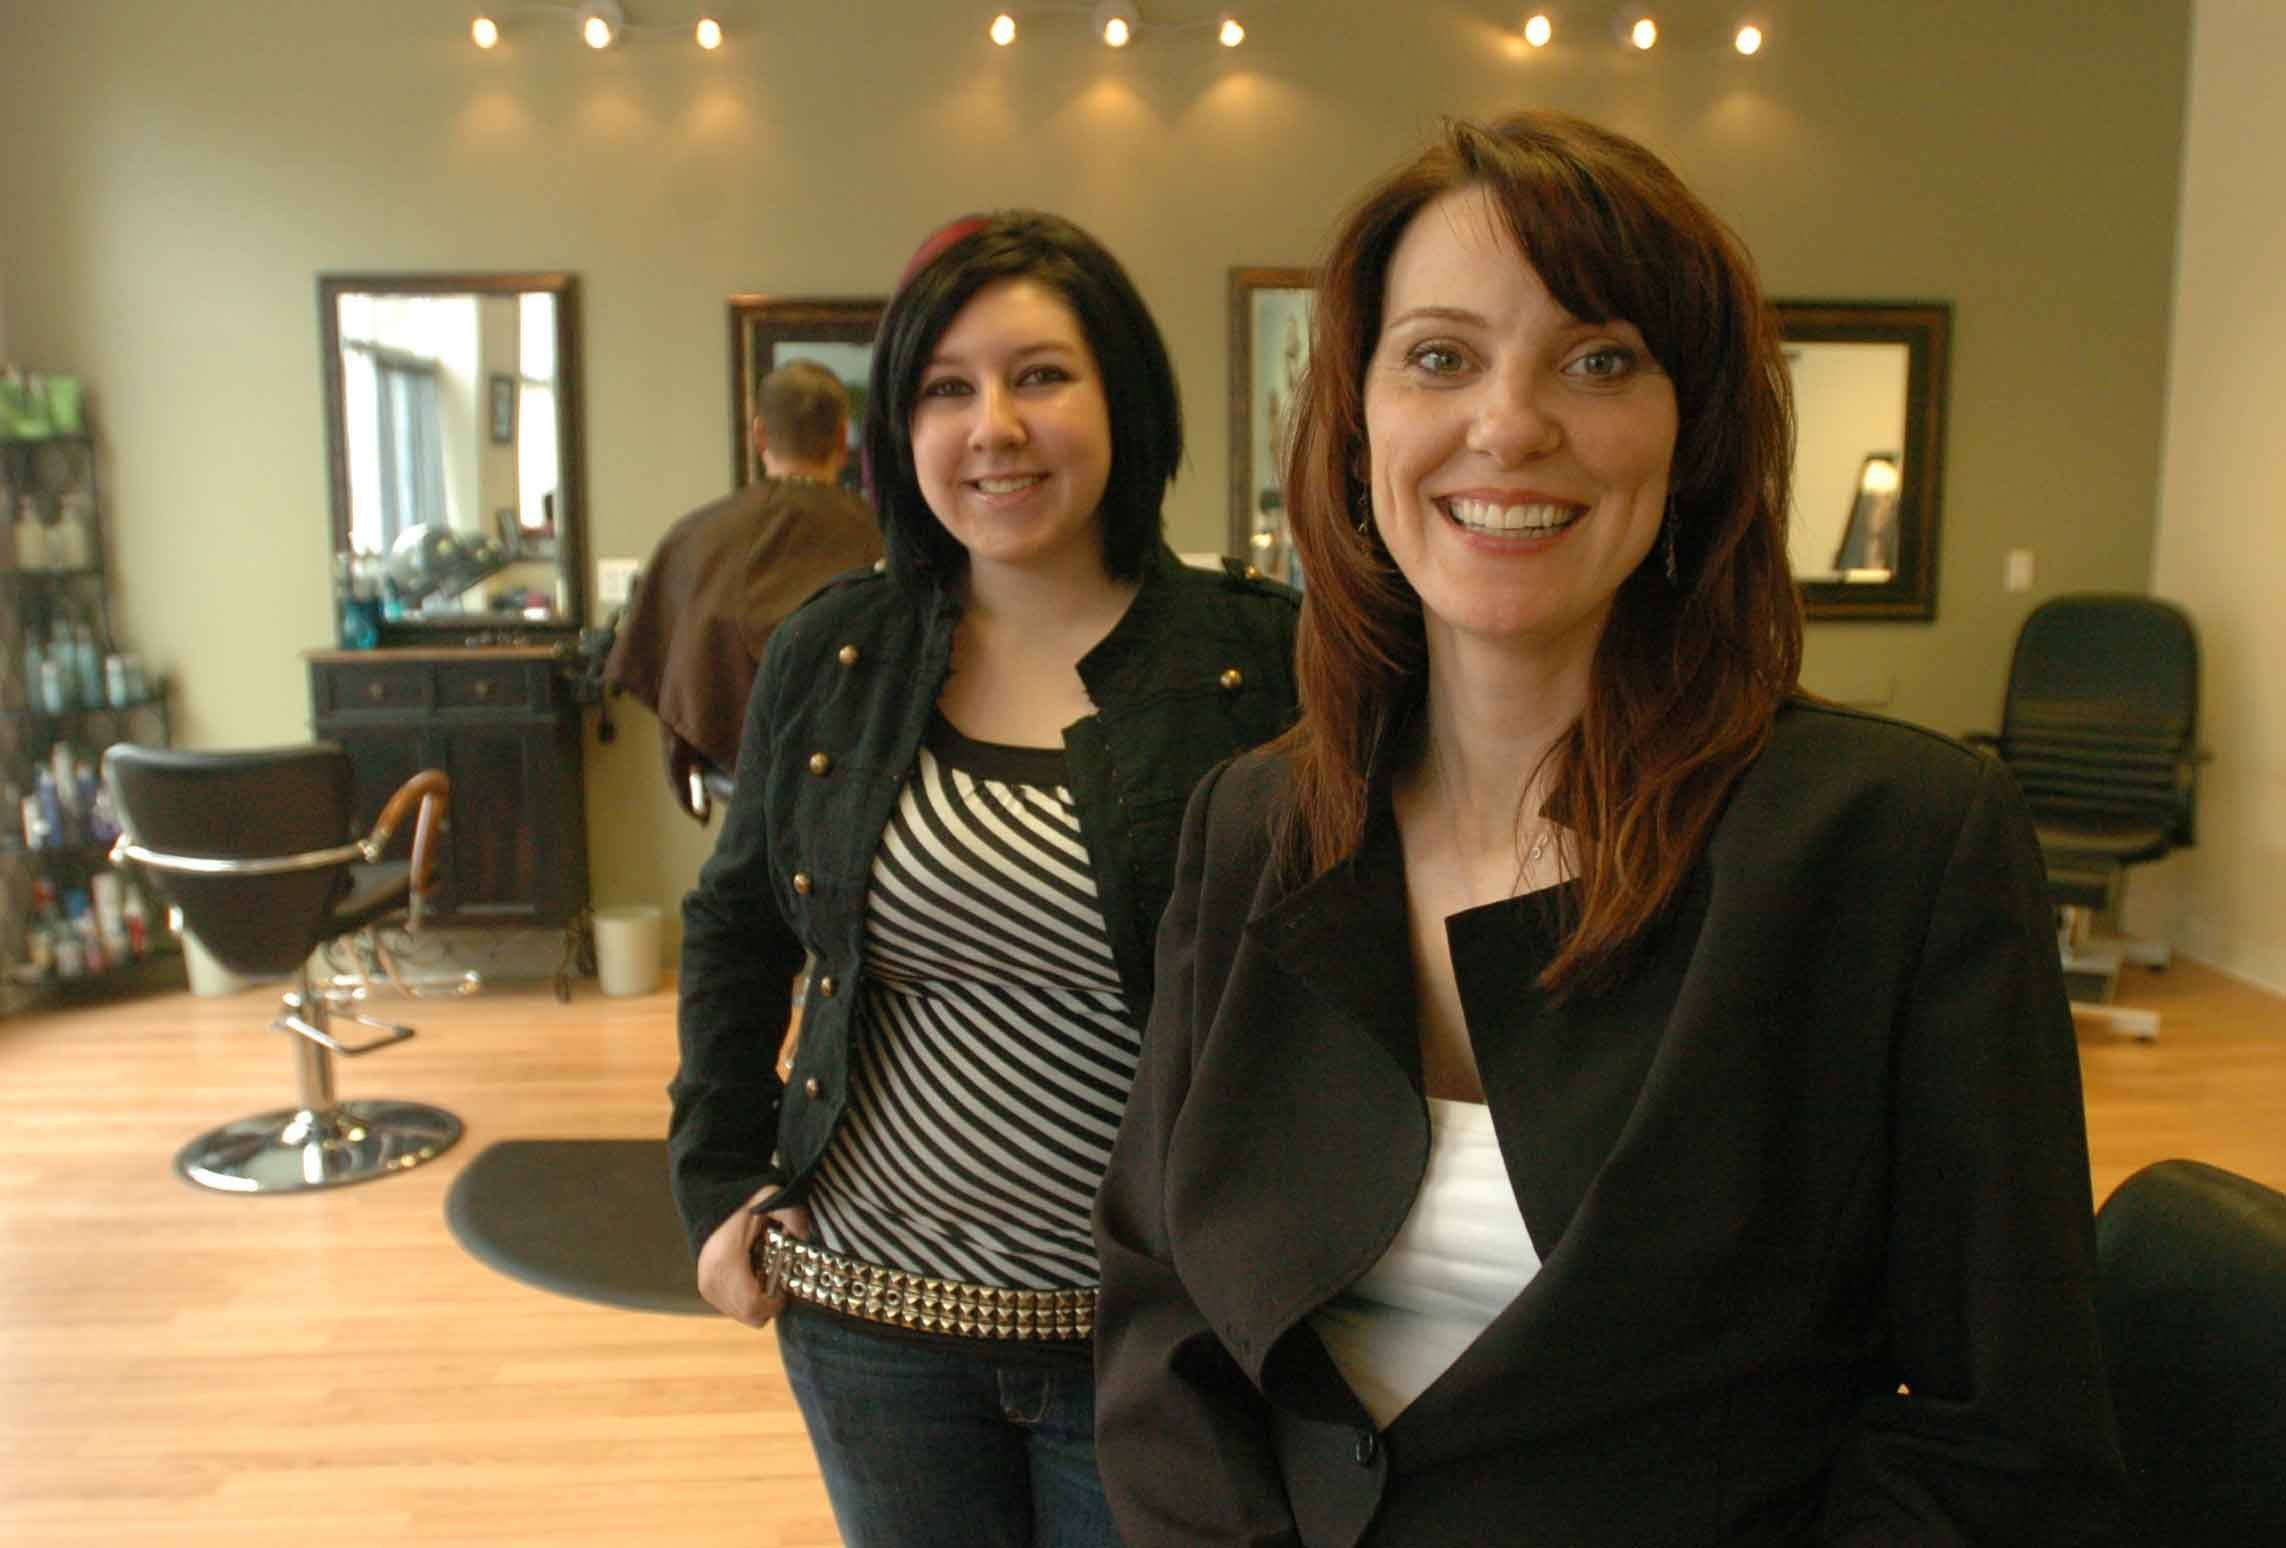 Sam Tirilich and Amy Madsen, right, of Night and Day Salon in Lombard say they have found success during their salon's first year.